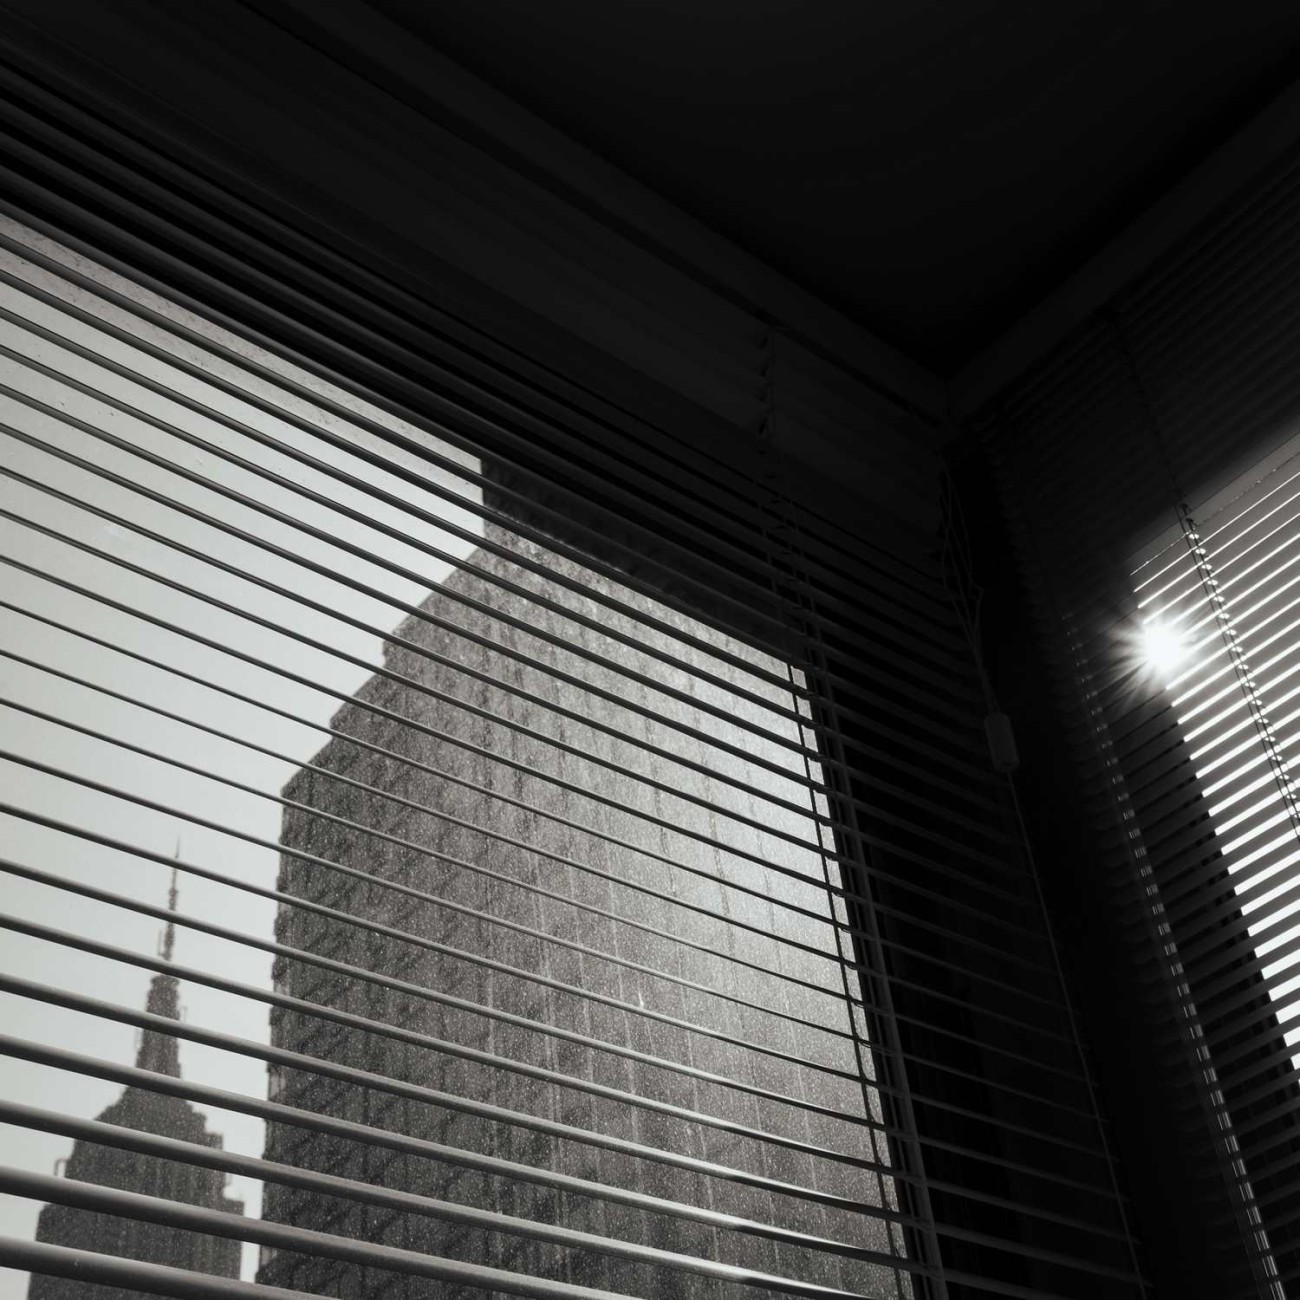 Sunrise and blinds with Empire State Building, New York, 2014